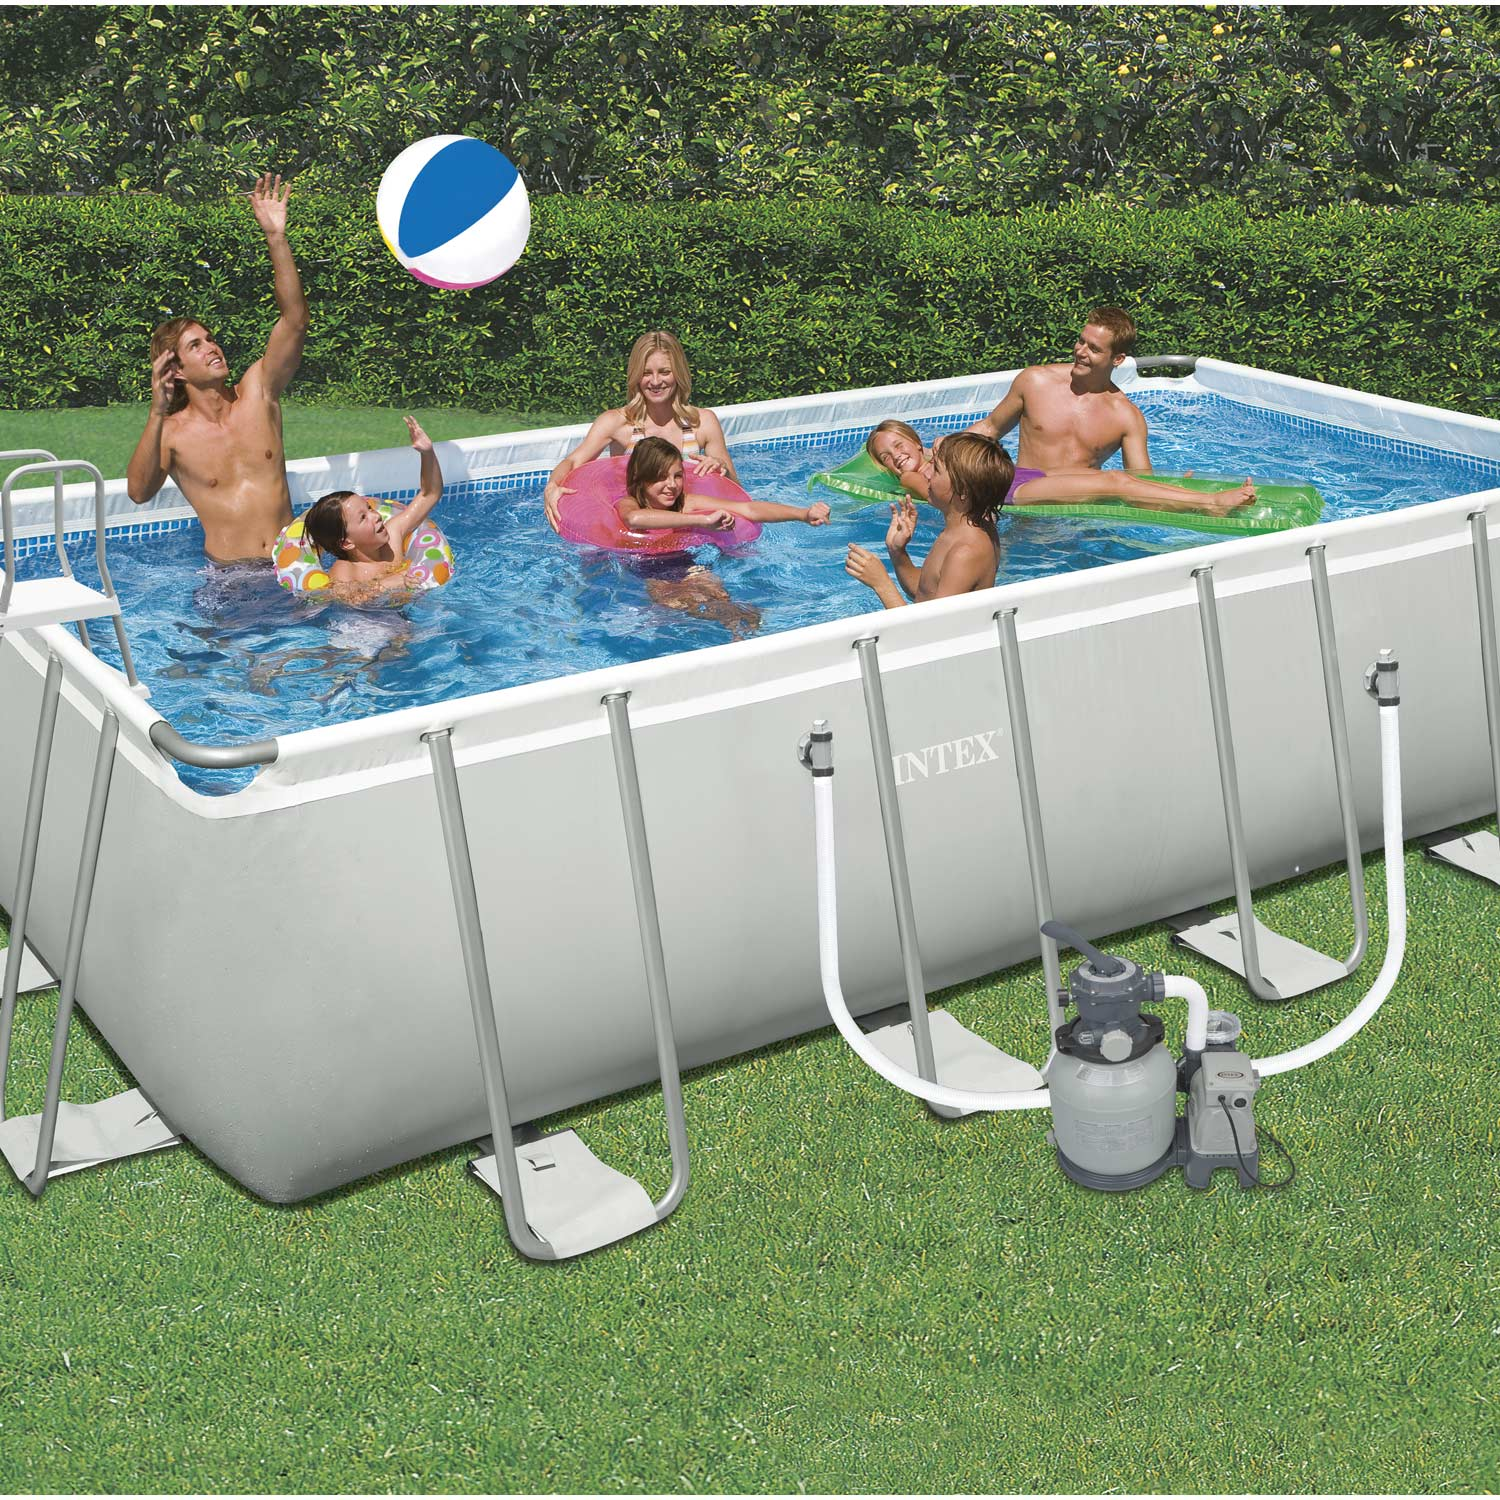 Piscine hors sol autoportante tubulaire intex l x l for Skimmer piscine tubulaire hors sol